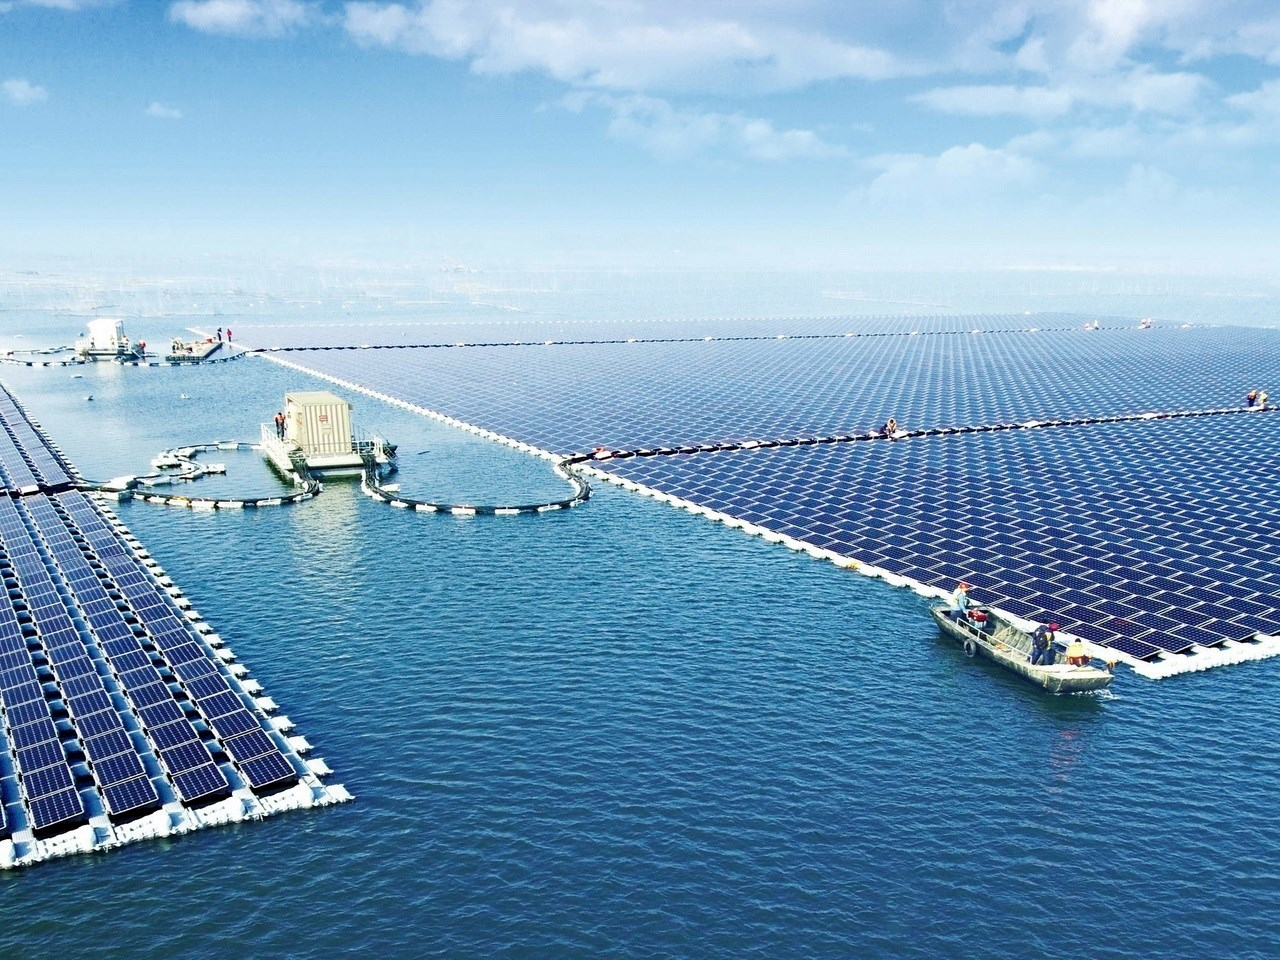 40 megawatt floating photovoltaic facility power plant